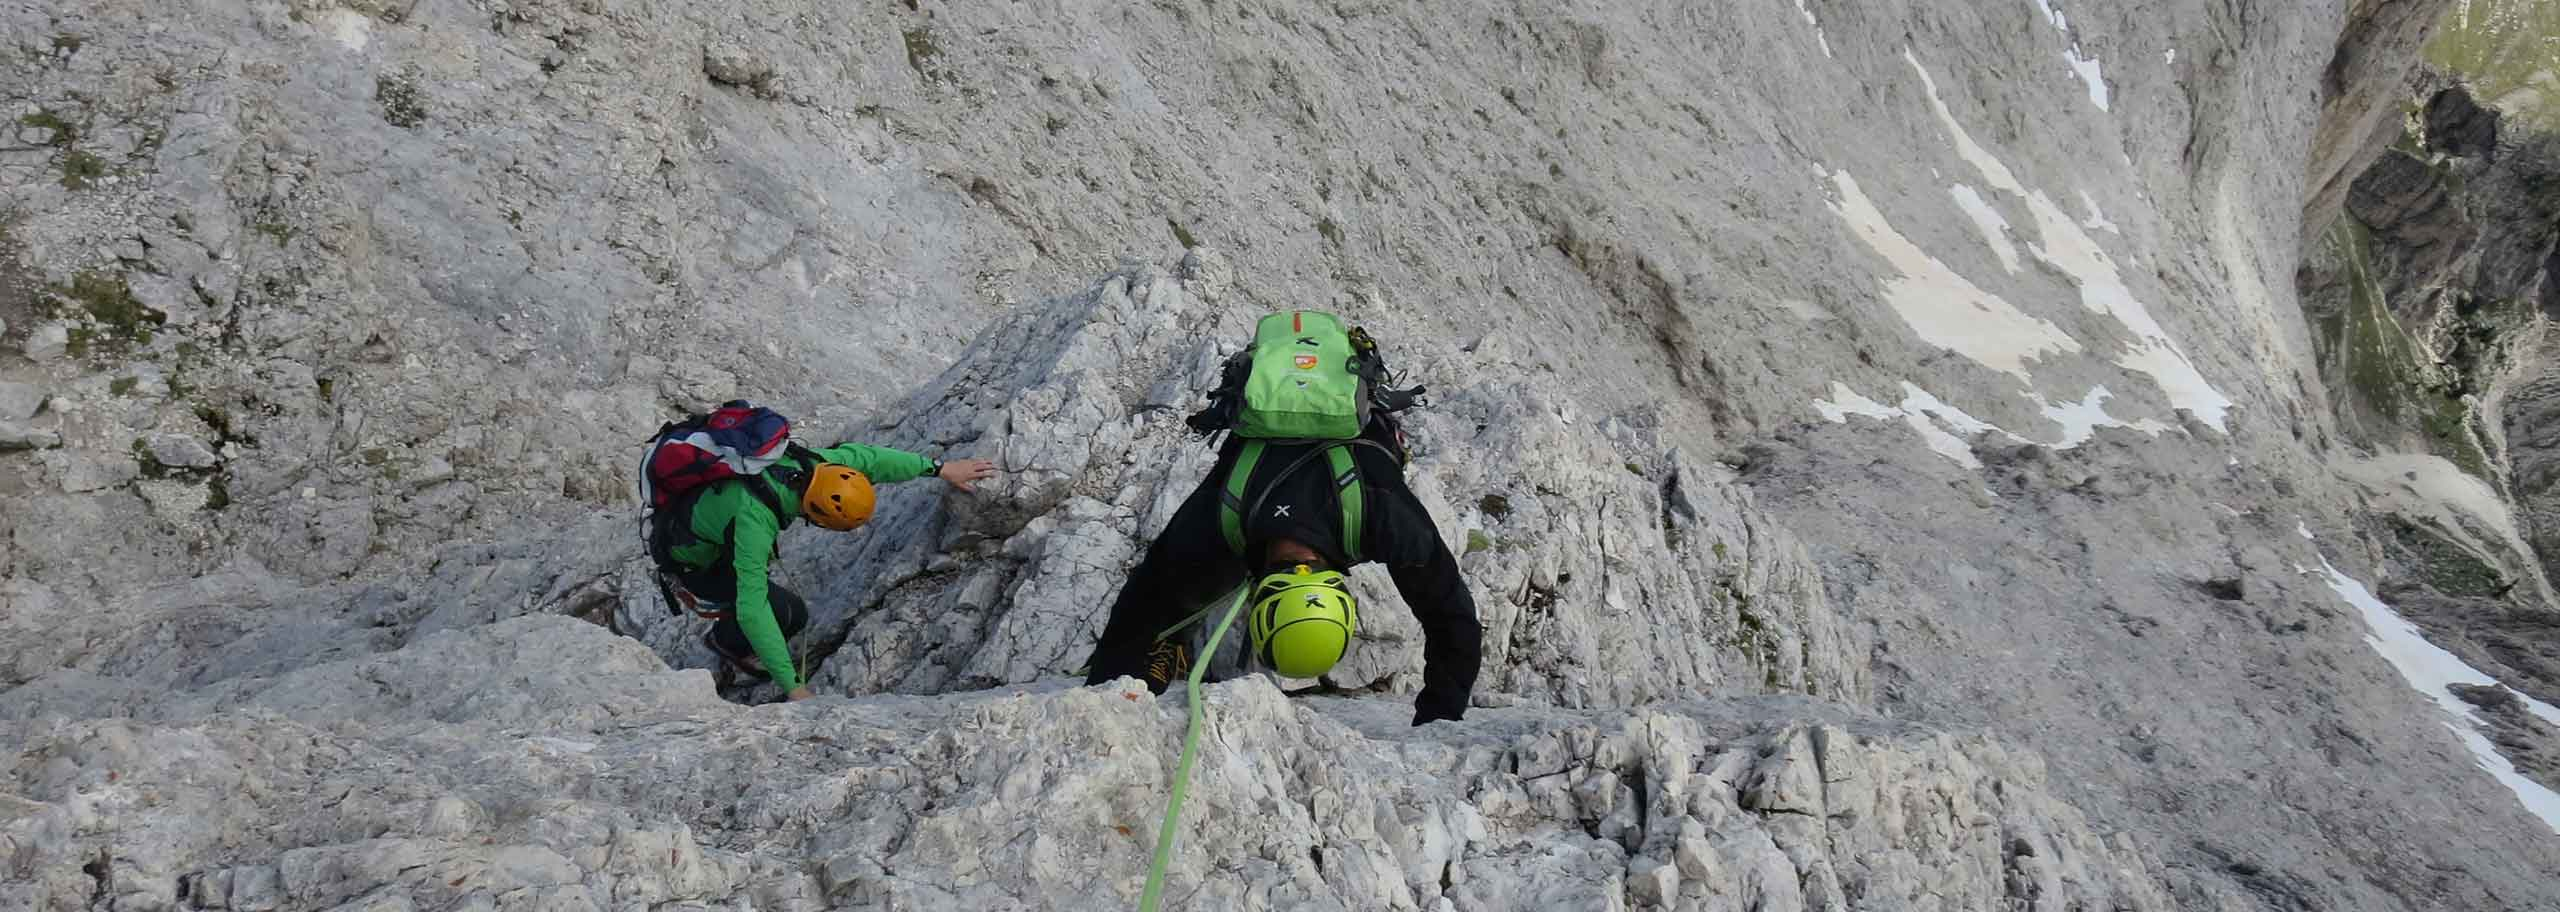 Climbing with a Mountain Guide in the Alpe di Siusi